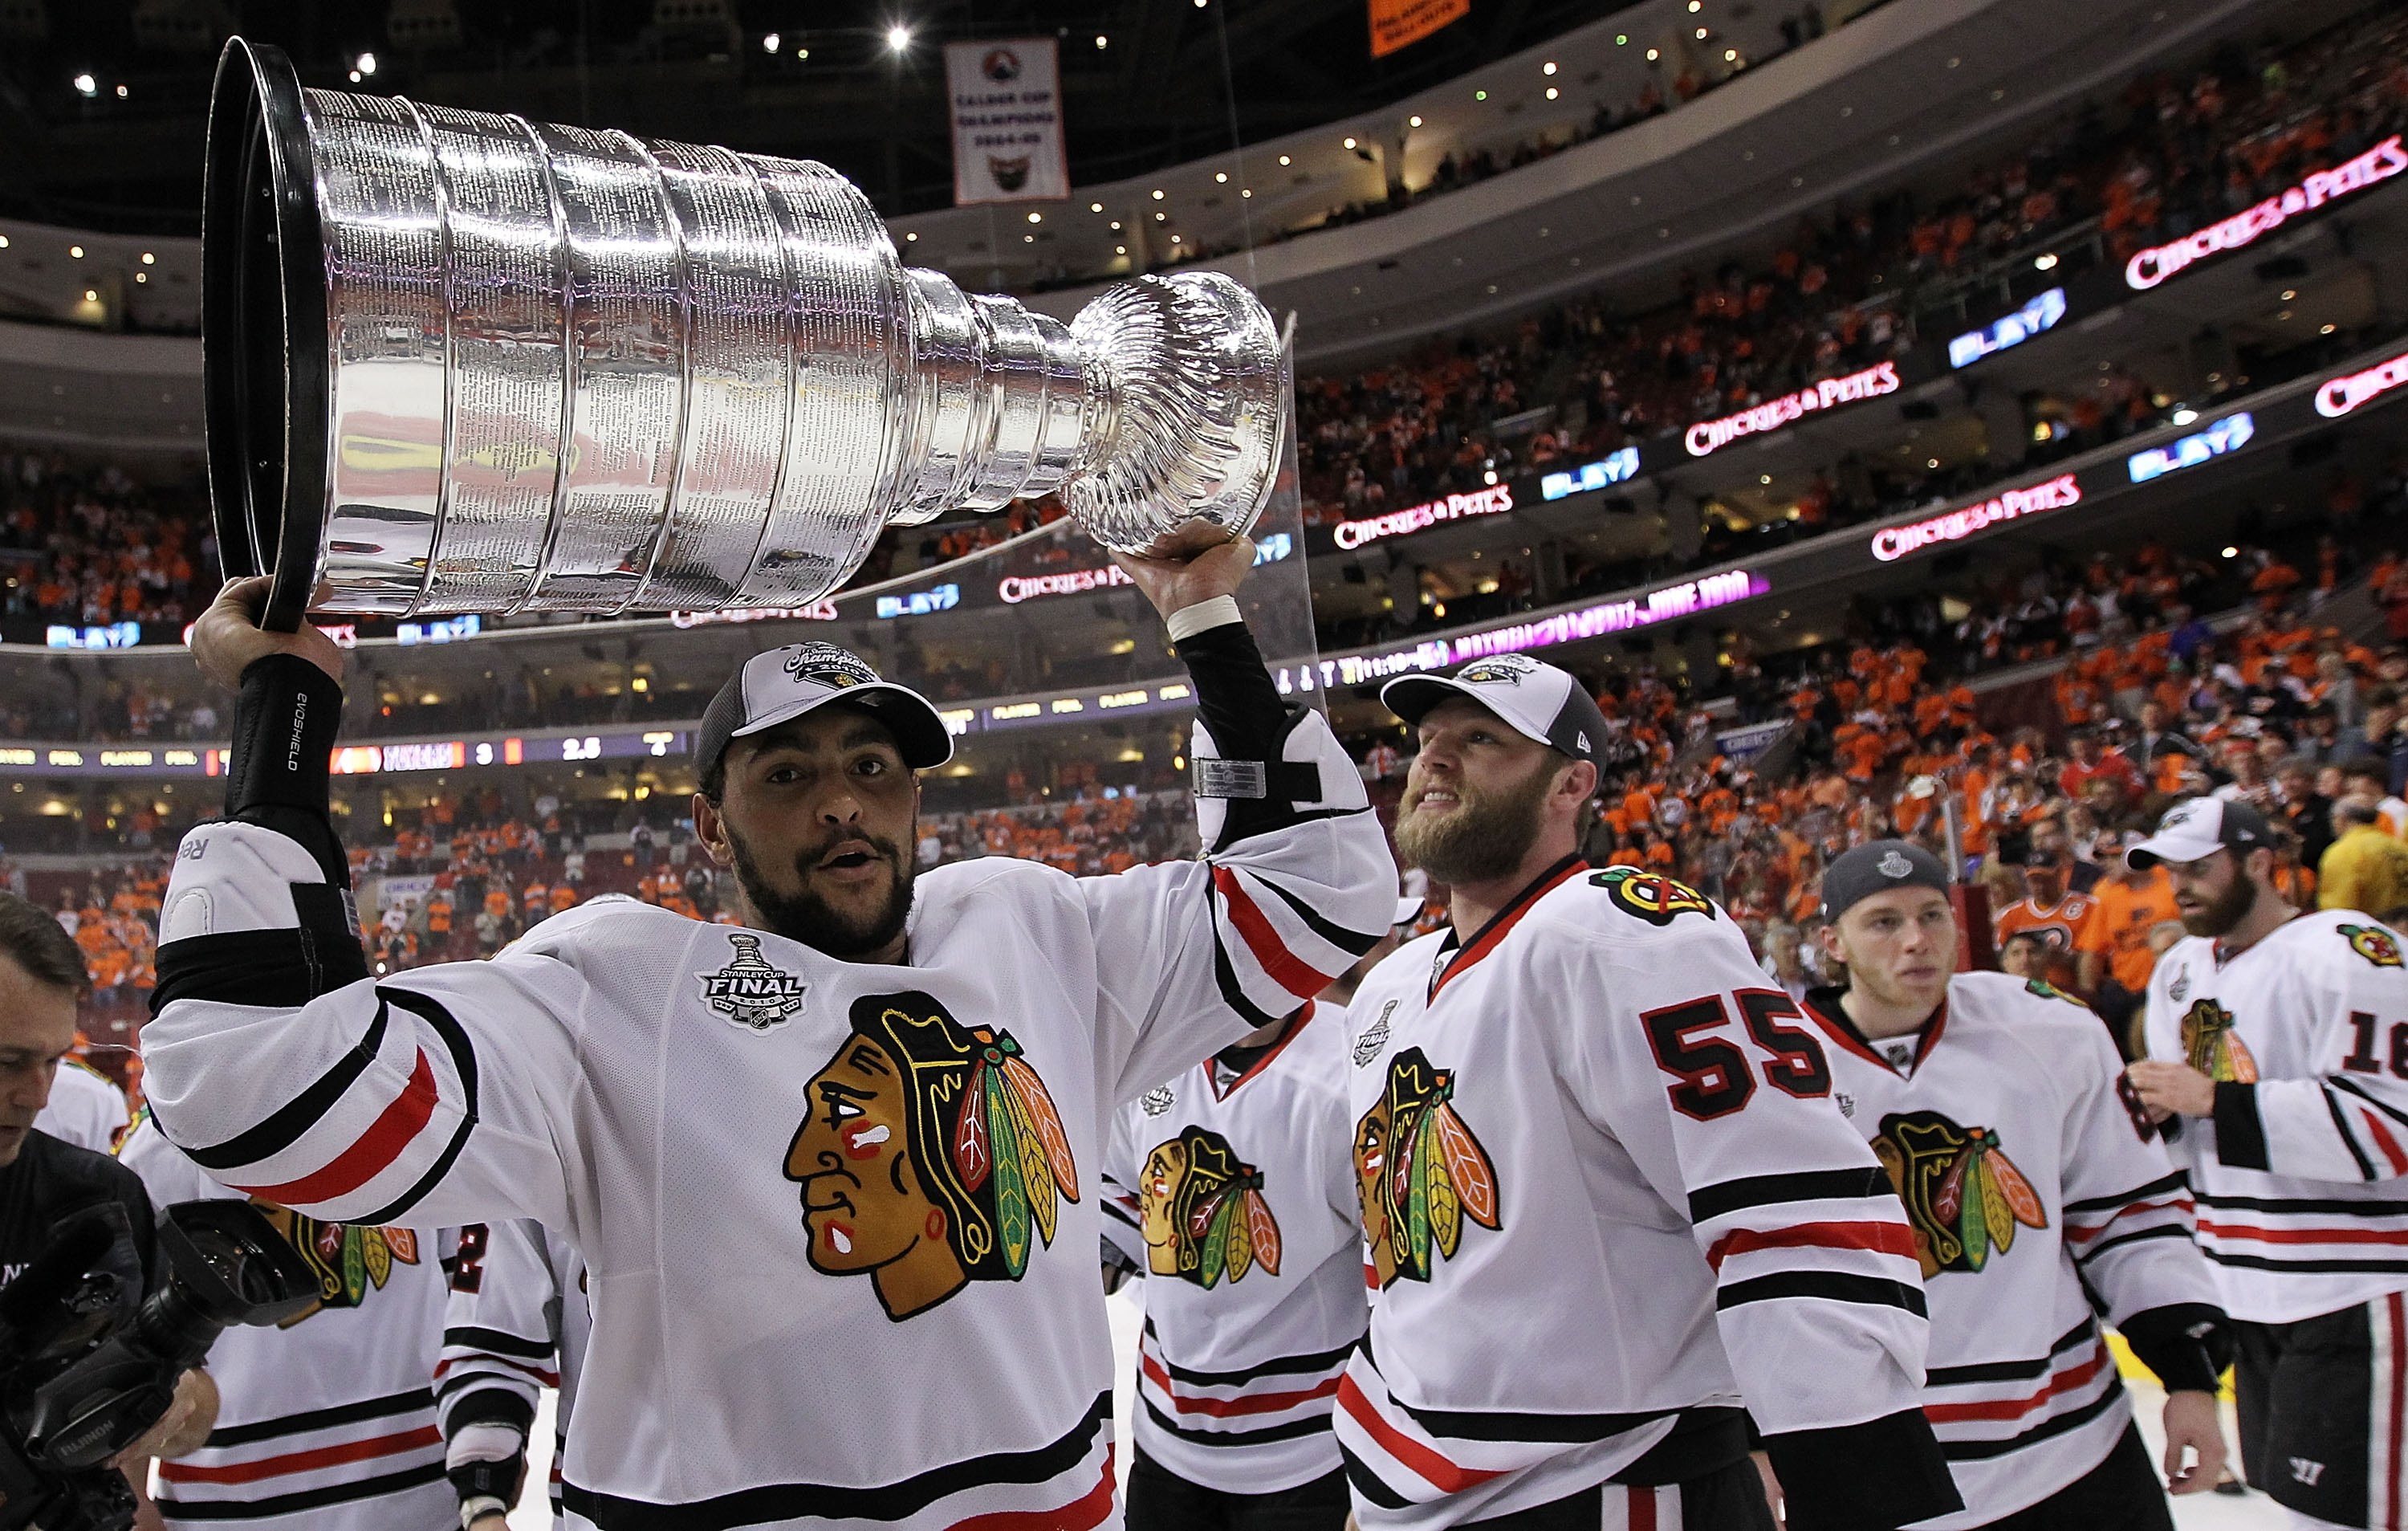 Dustin Byfuglien hoists the Stanley Cup while wearing a Blackhawks jersey for the last time.